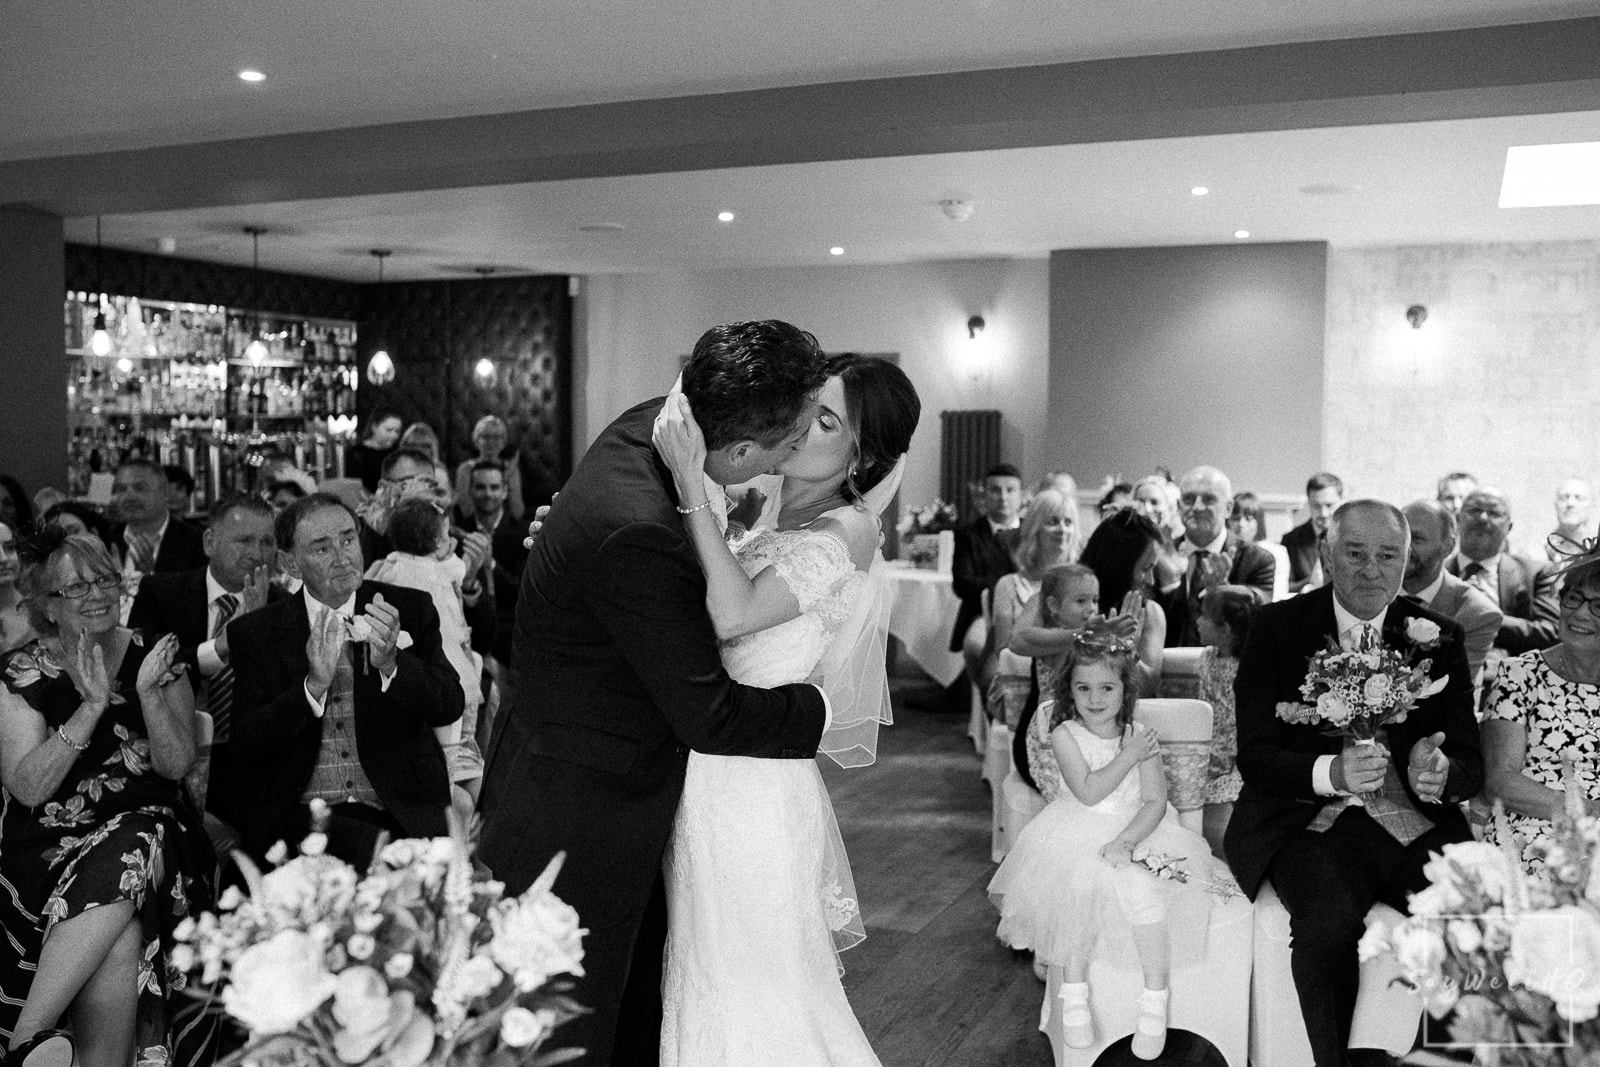 The Chequers Inn Wedding Photography - Bride and groom enjoy the wedding ceremony